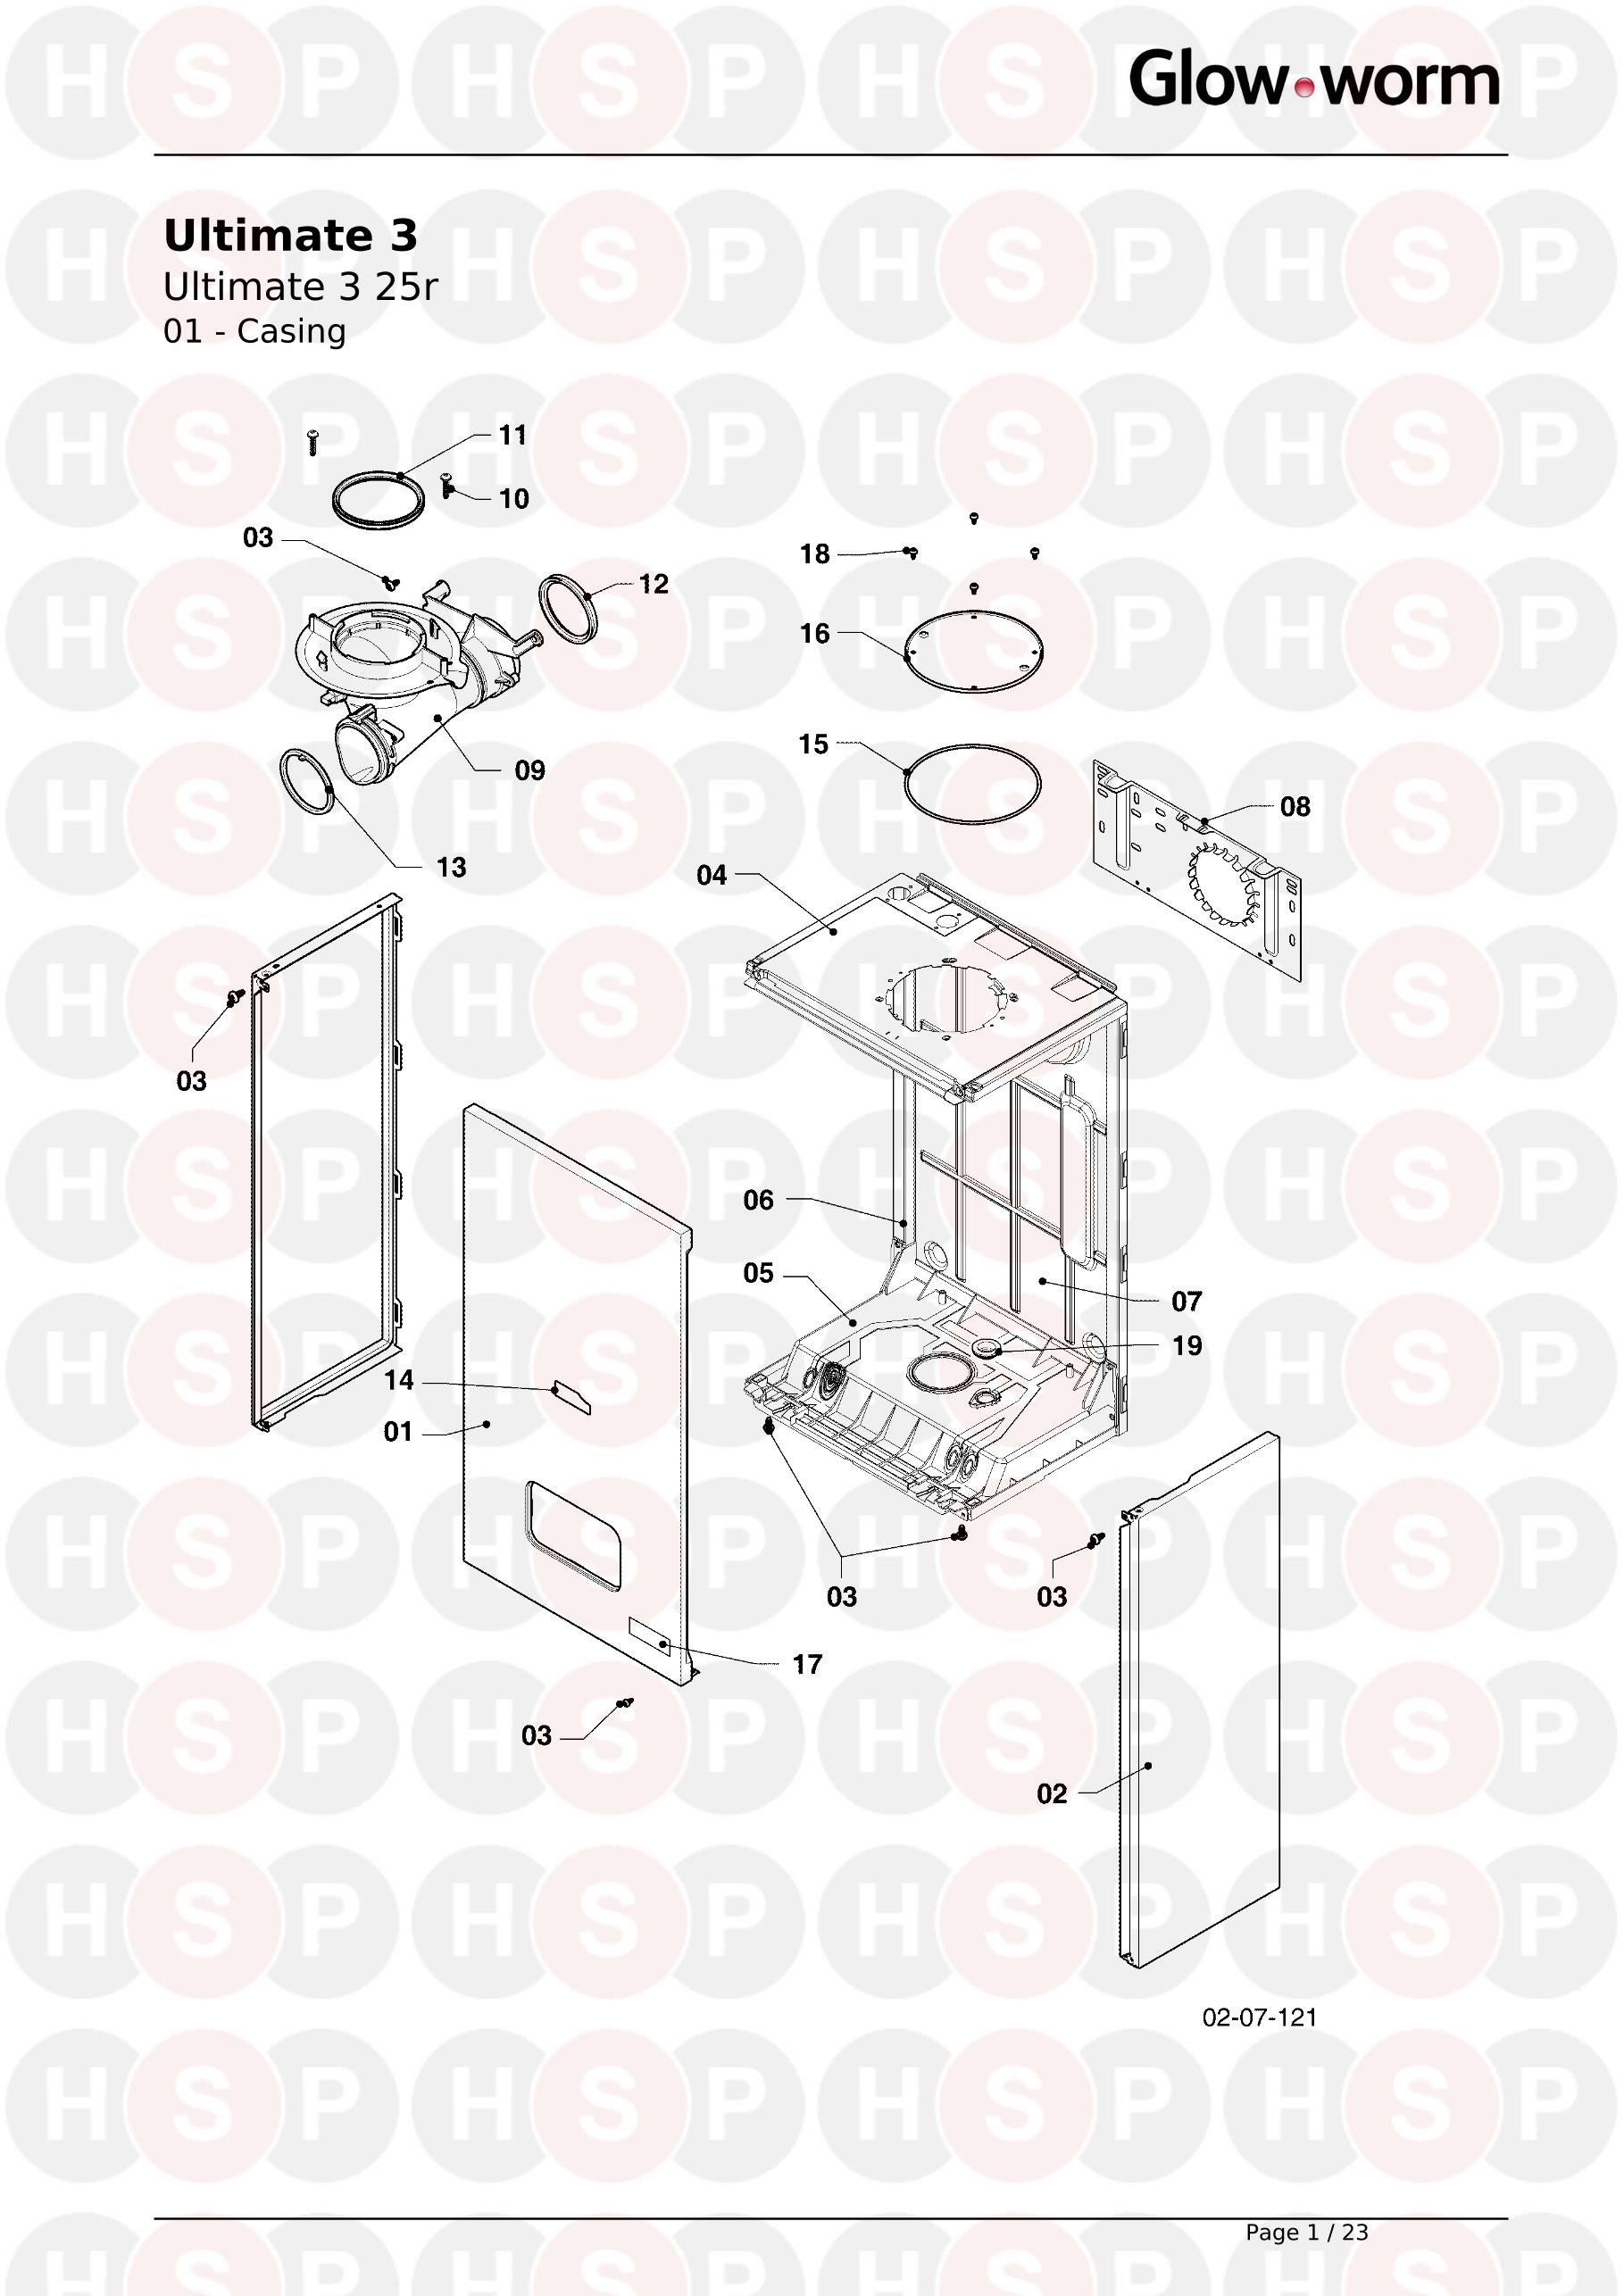 01 CASING diagram for Glowworm ULTIMATE 3 25r